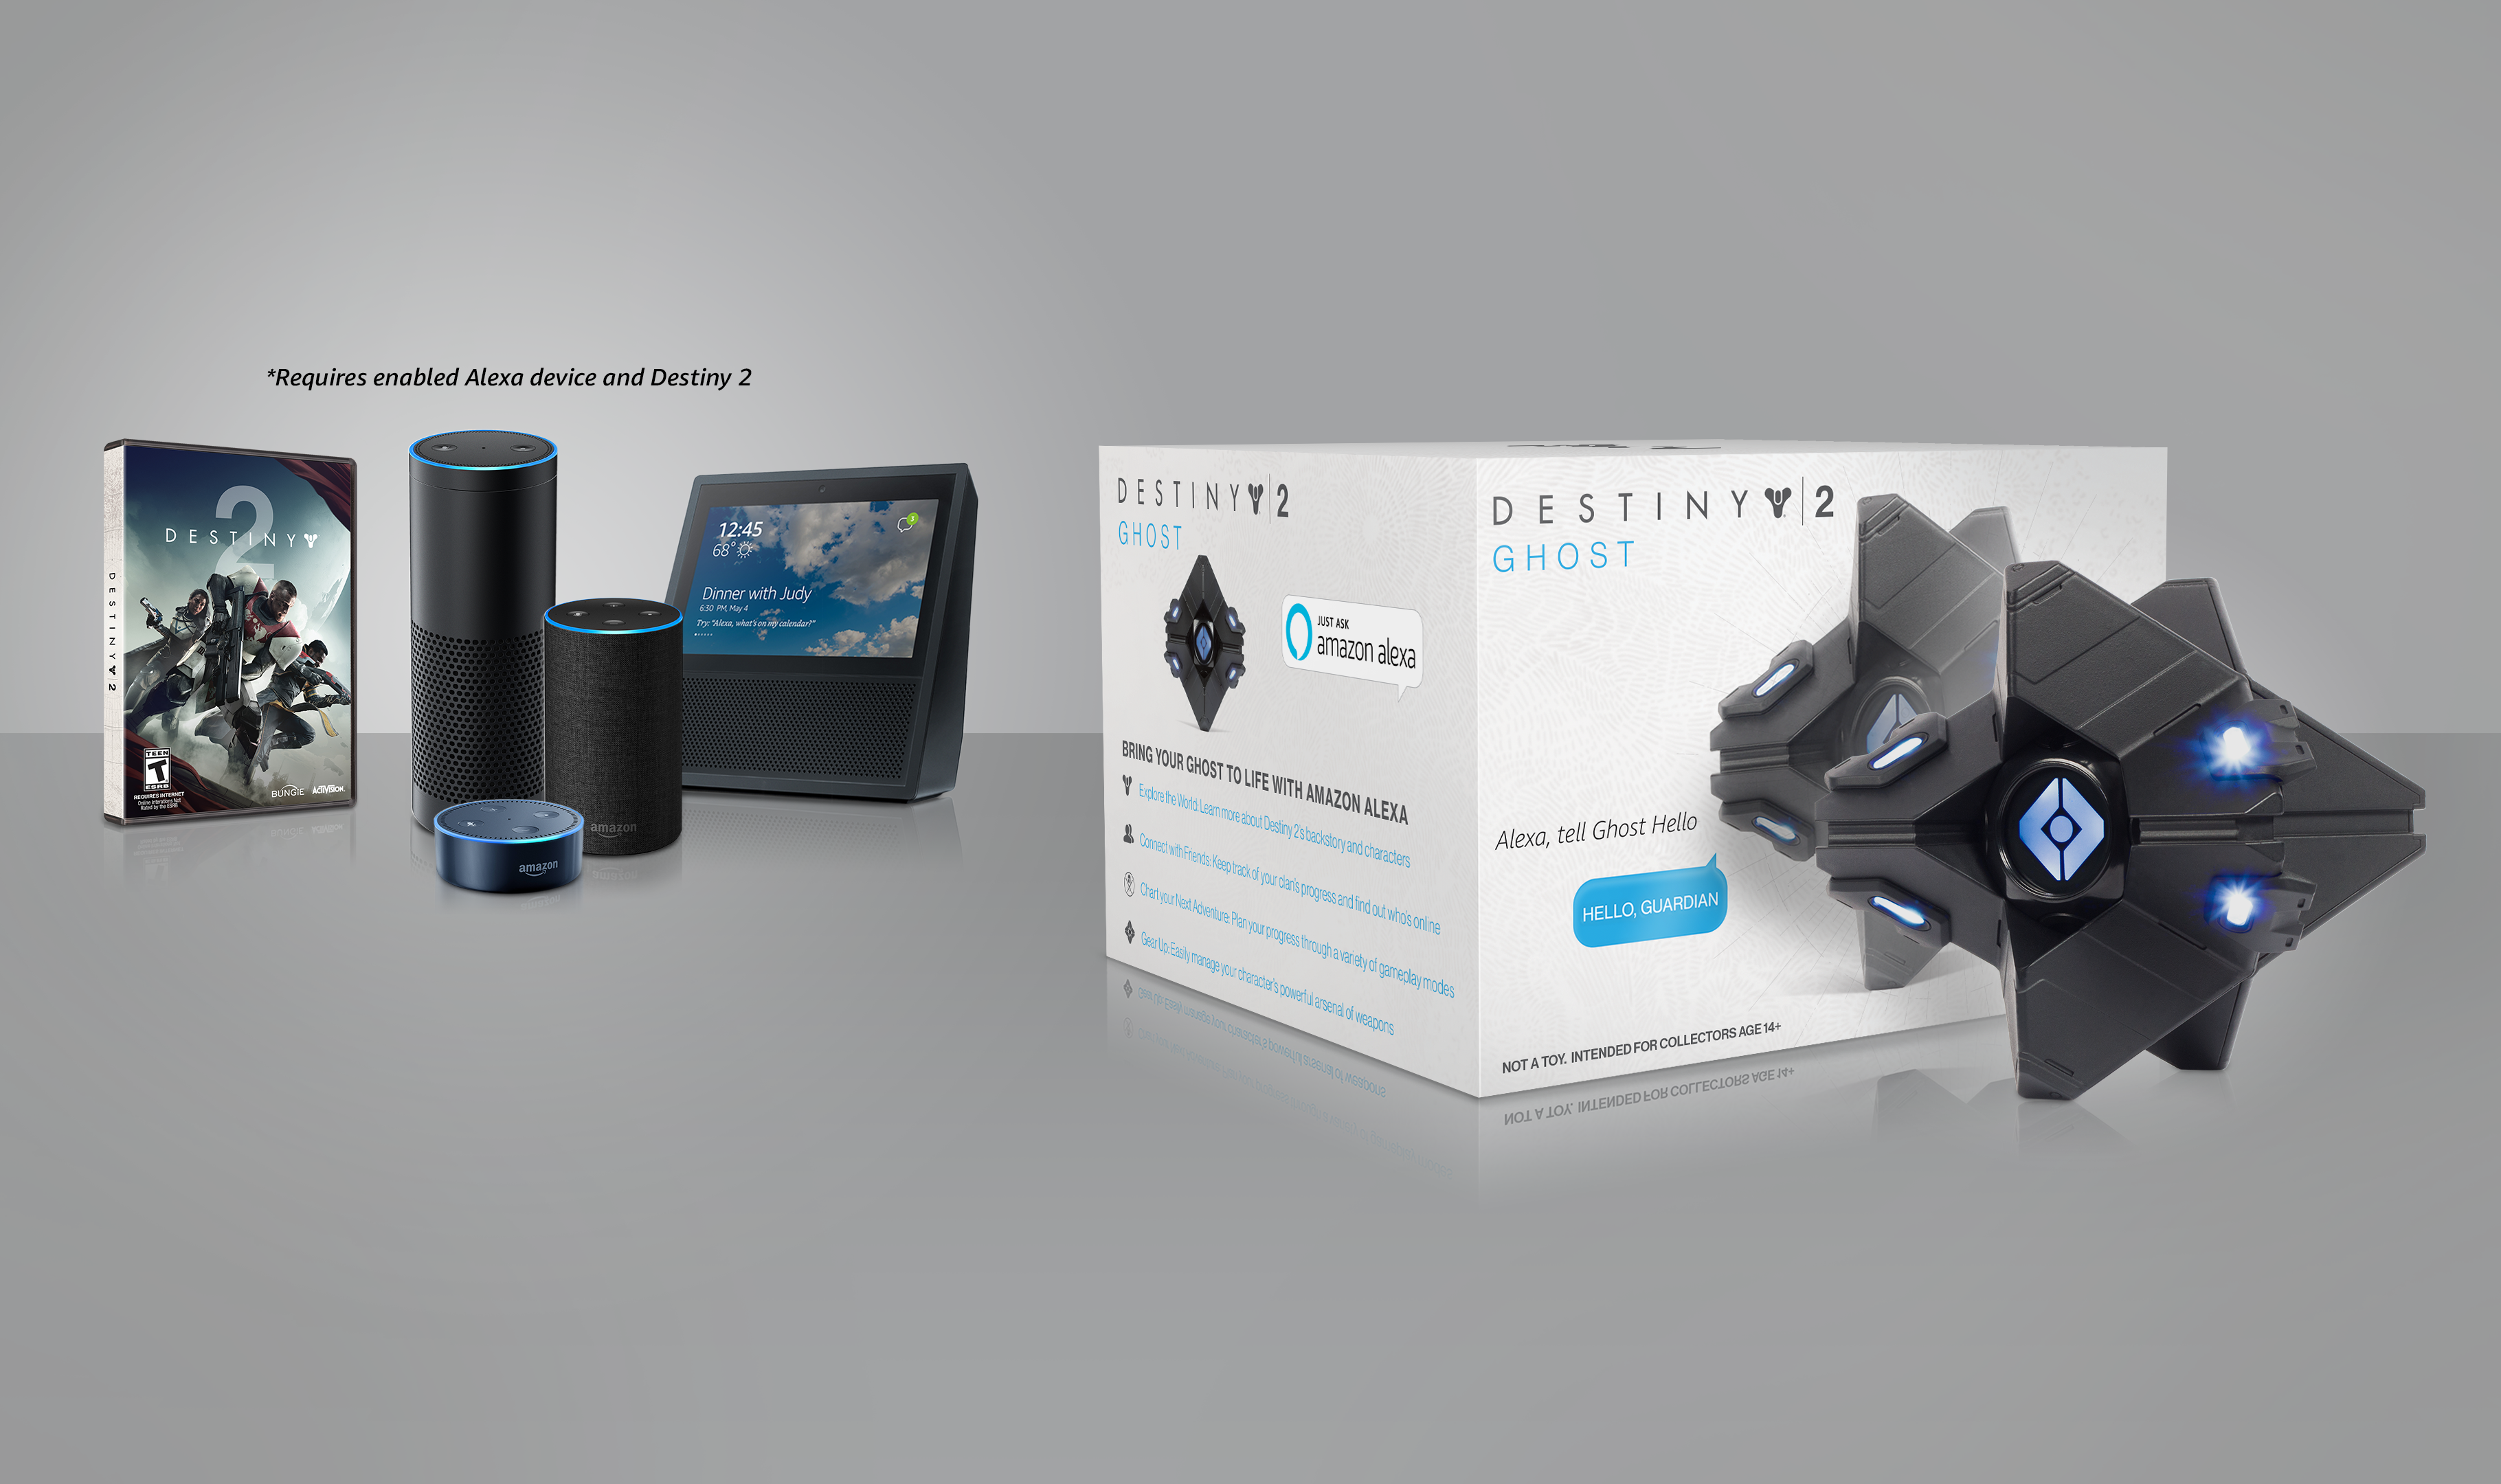 Amazon Limited Edition Destiny 2 Ghost - Requires Alexa-Enabled Device